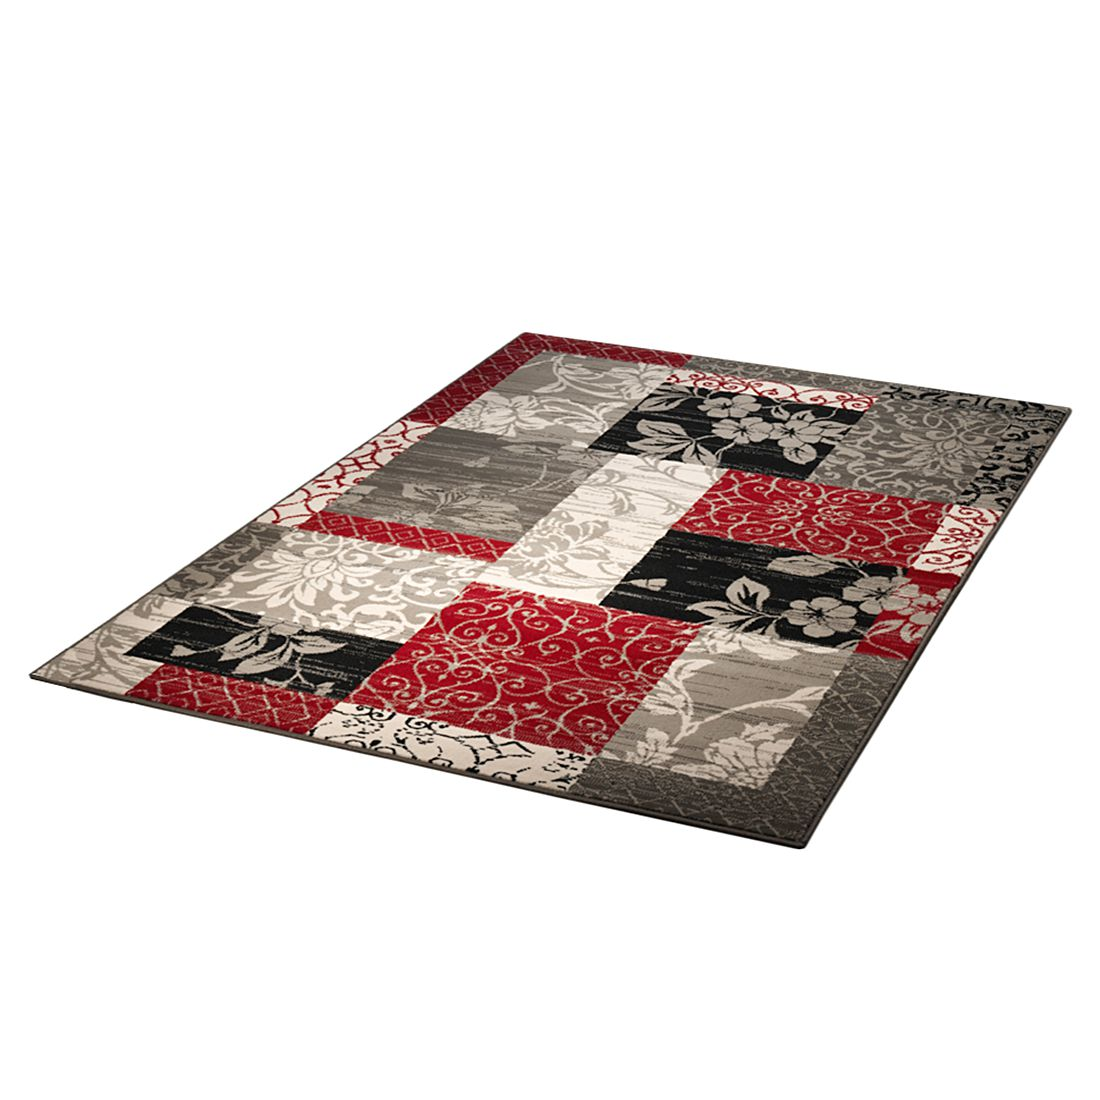 Tapijt Prime Pile Billy Jean - grijs/rood/wit - 160x230cm, Hanse Home Collection